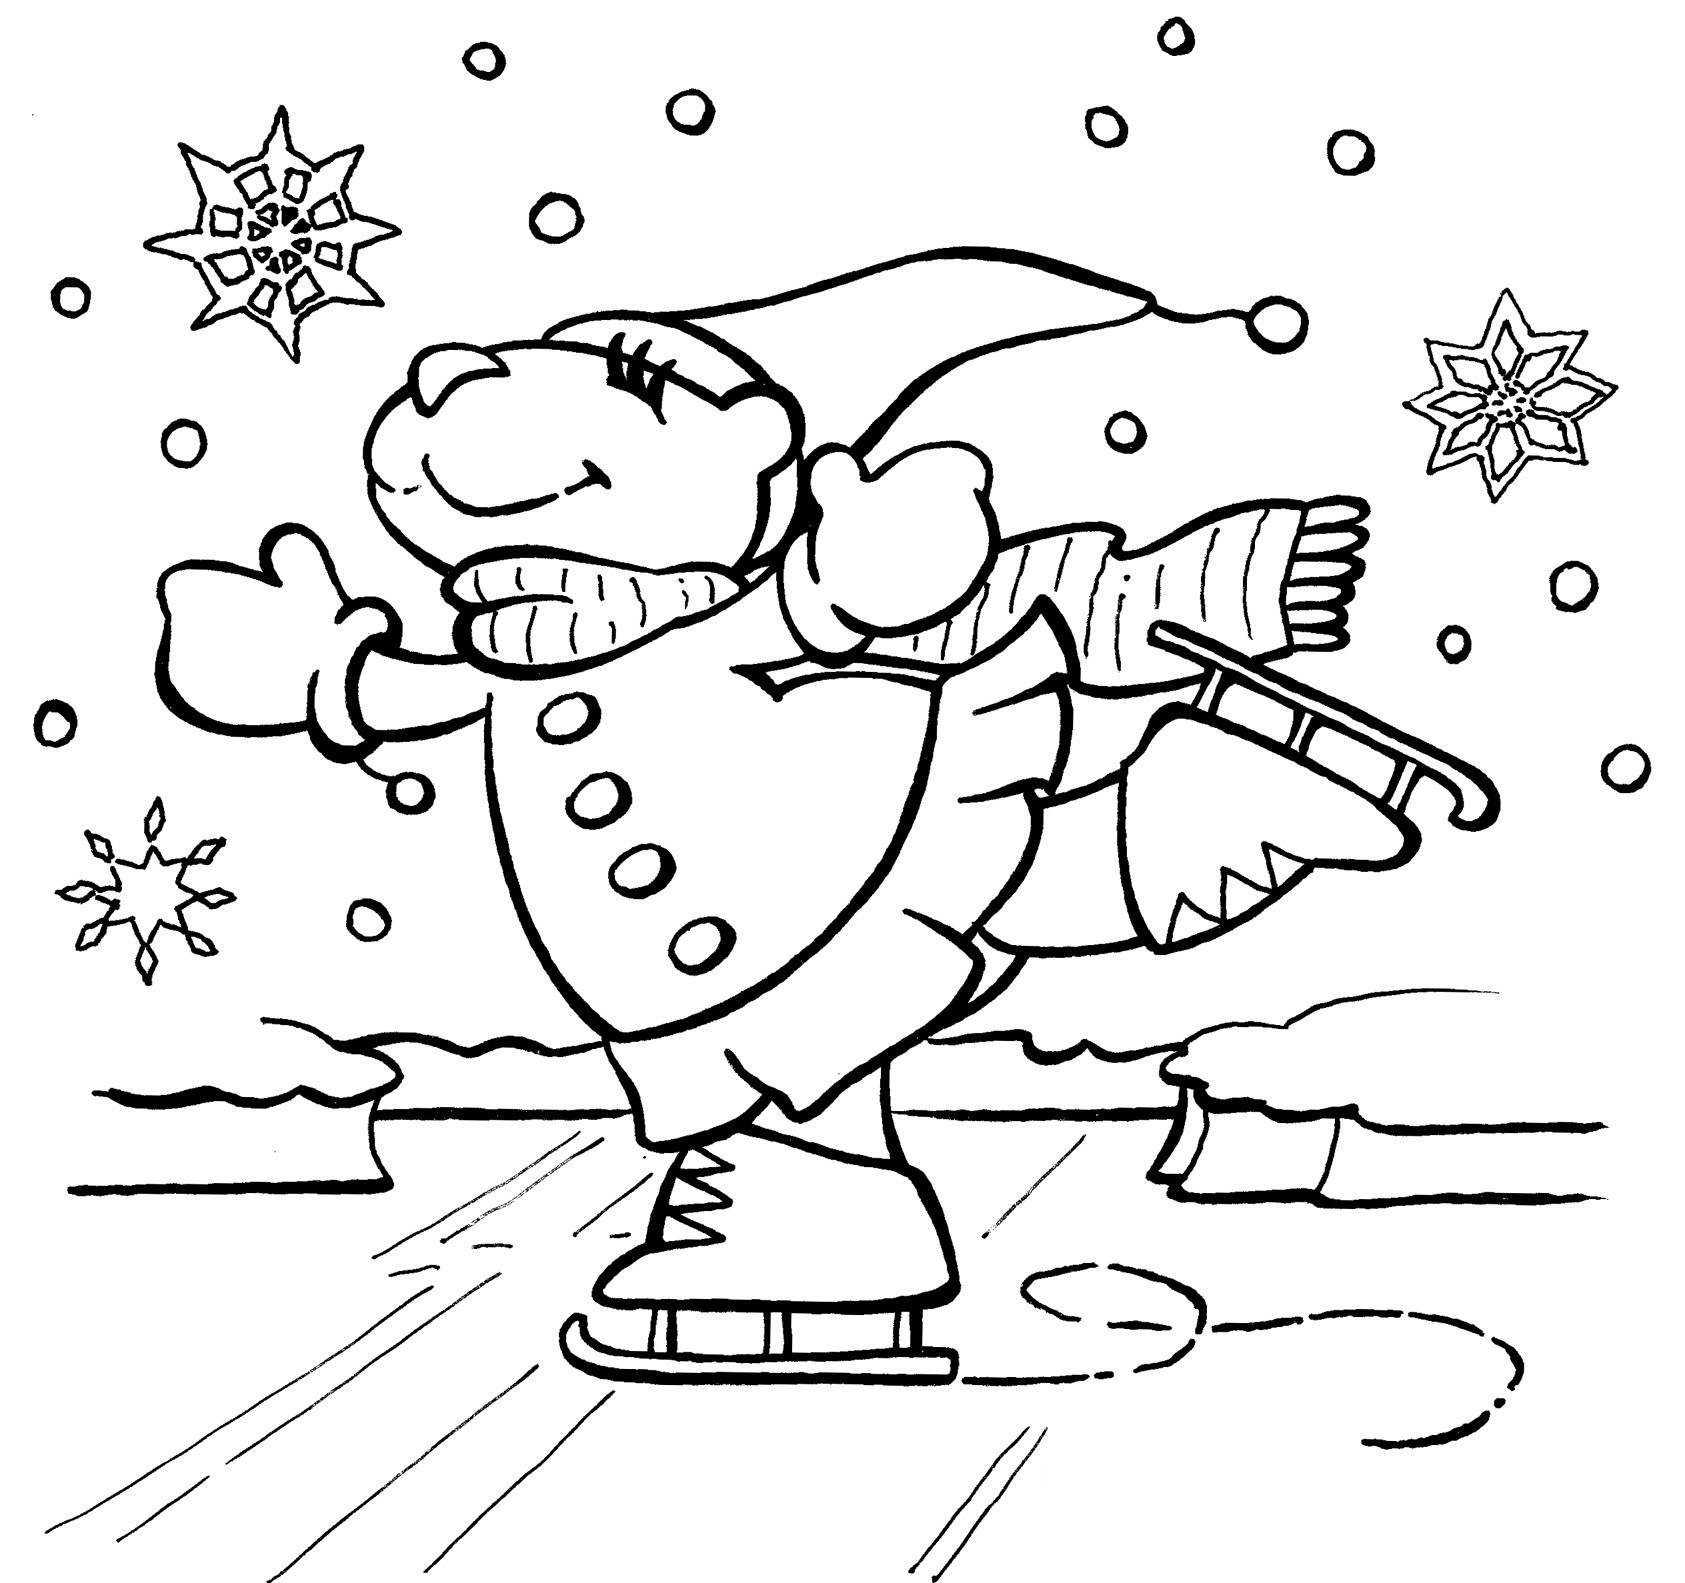 Free Coloring Sheets For Kids Winter  Free Winter Coloring Pages For Kids